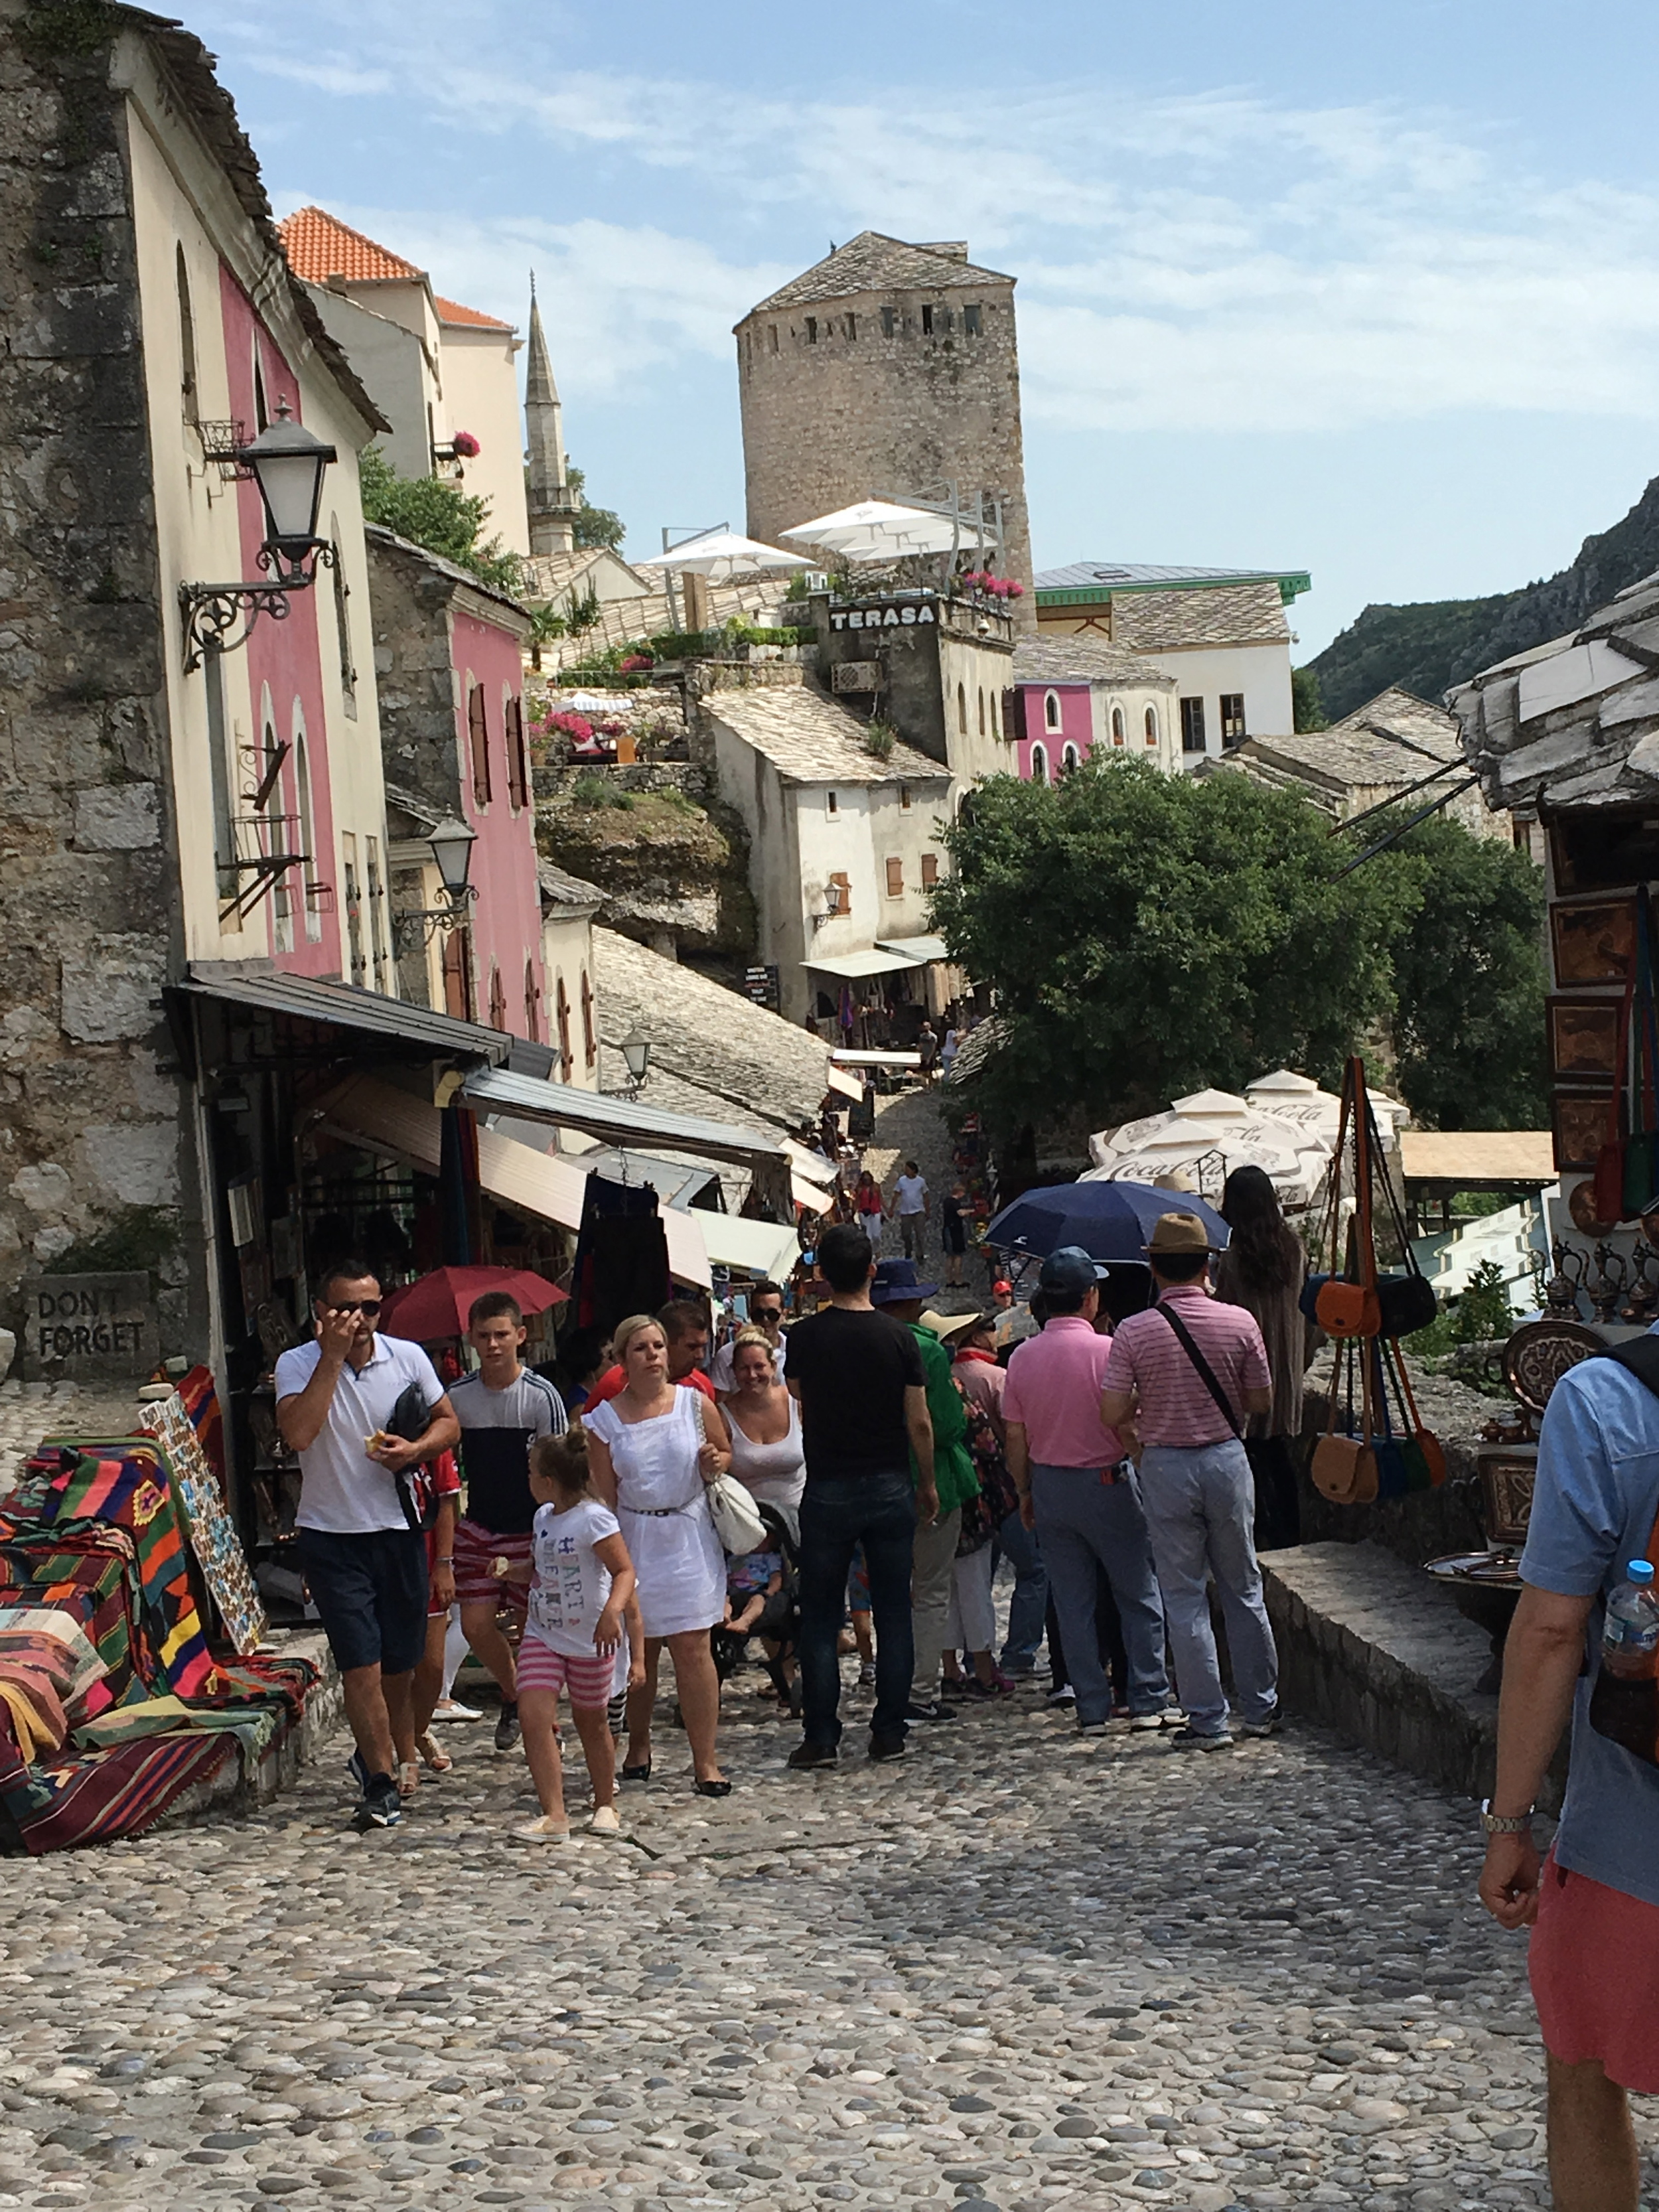 Wandering the outdoor markets in Mostar, Bosnia